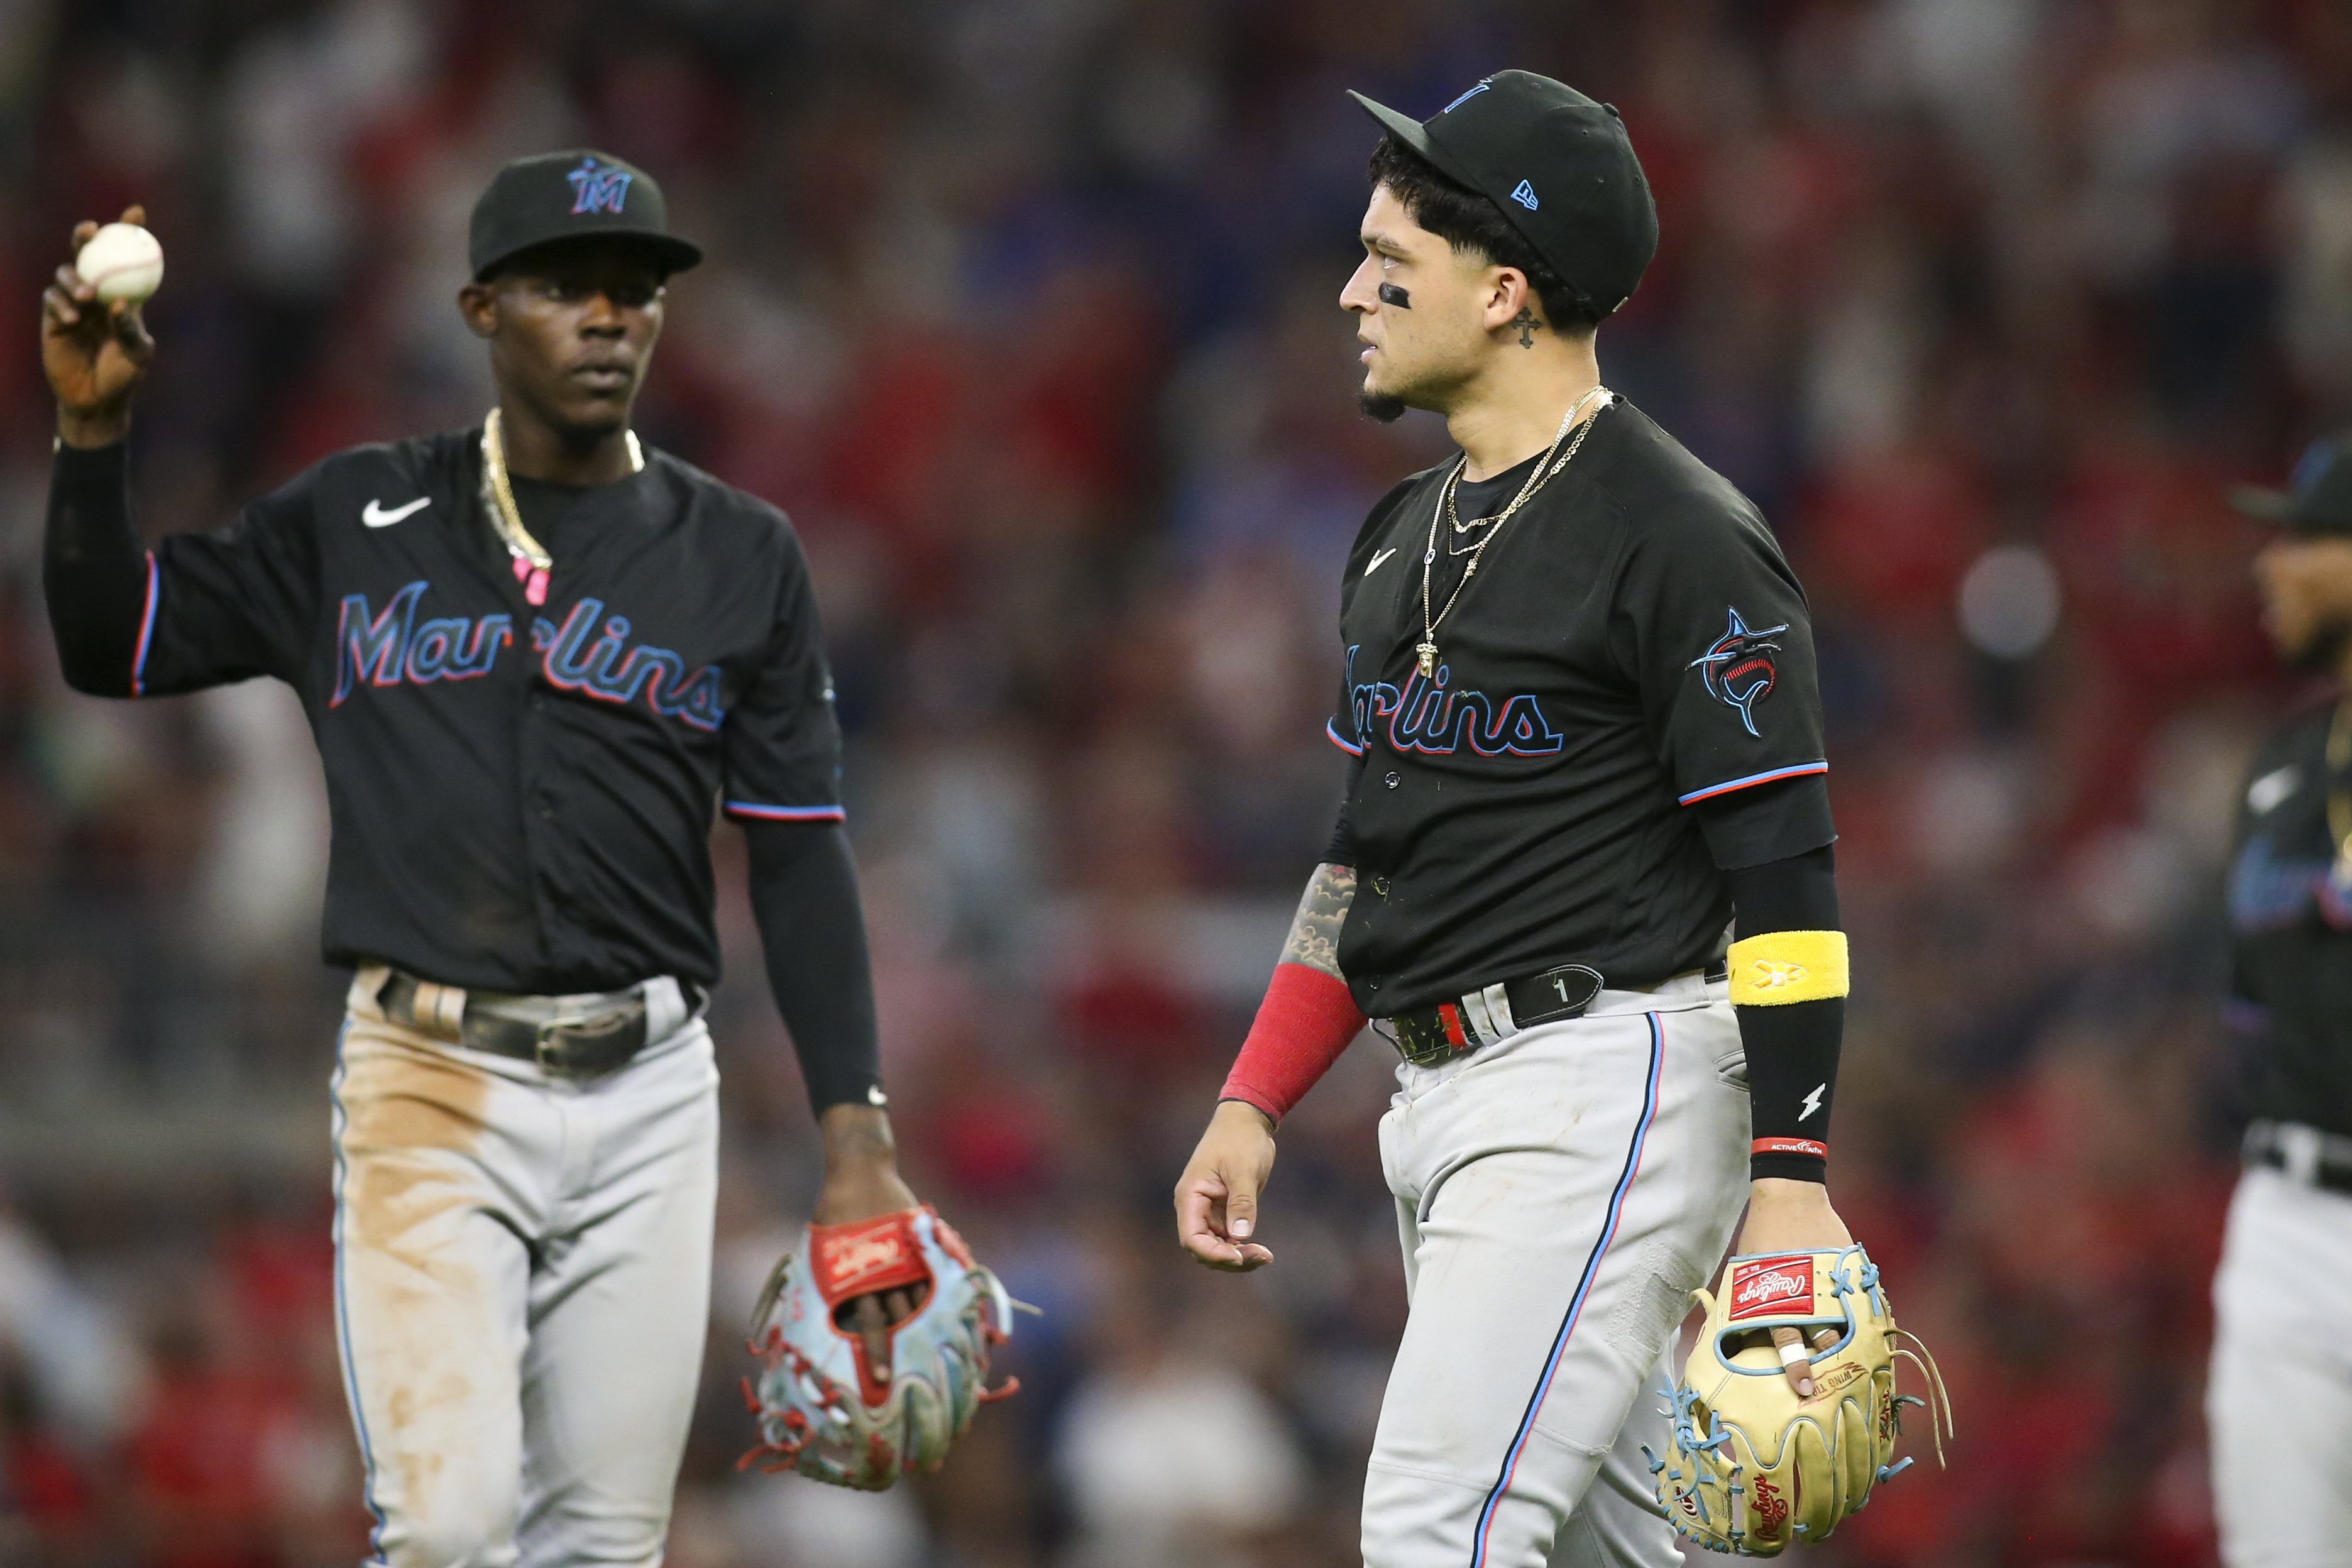 Miami Marlins second baseman Isan Diaz (1) reacts after an error as second baseman Jazz Chisholm Jr. (2) looks on against the Atlanta Braves in the fifth inning at Truist Park